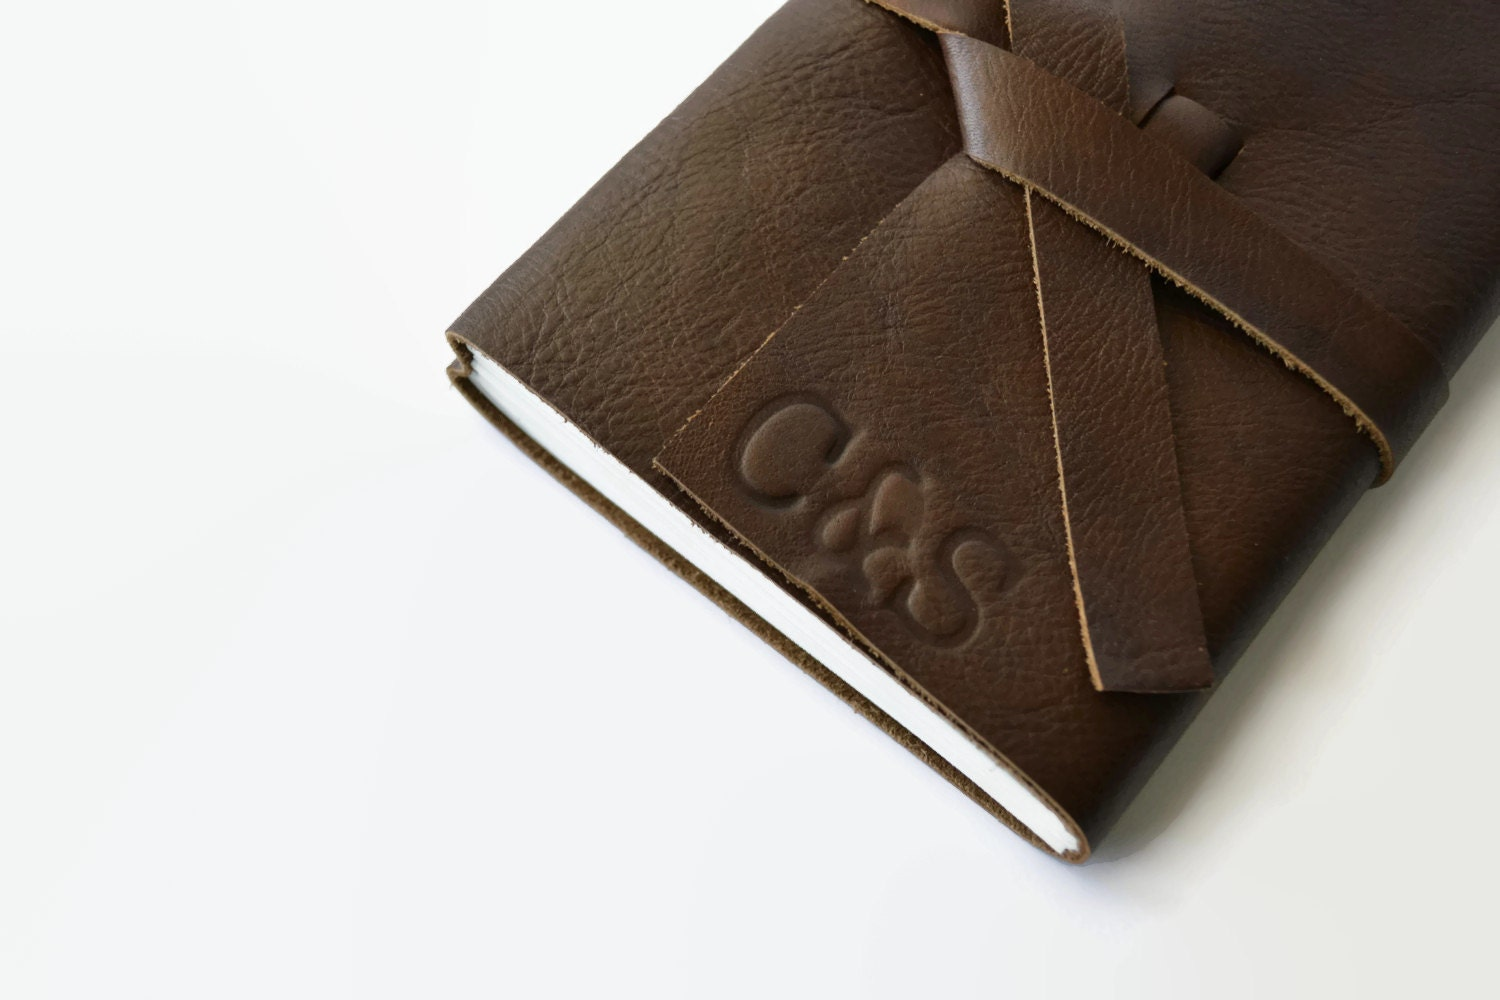 Leather Wedding Anniversary Gifts For Her: Personalized Anniversary Gift Leather Journal Leather